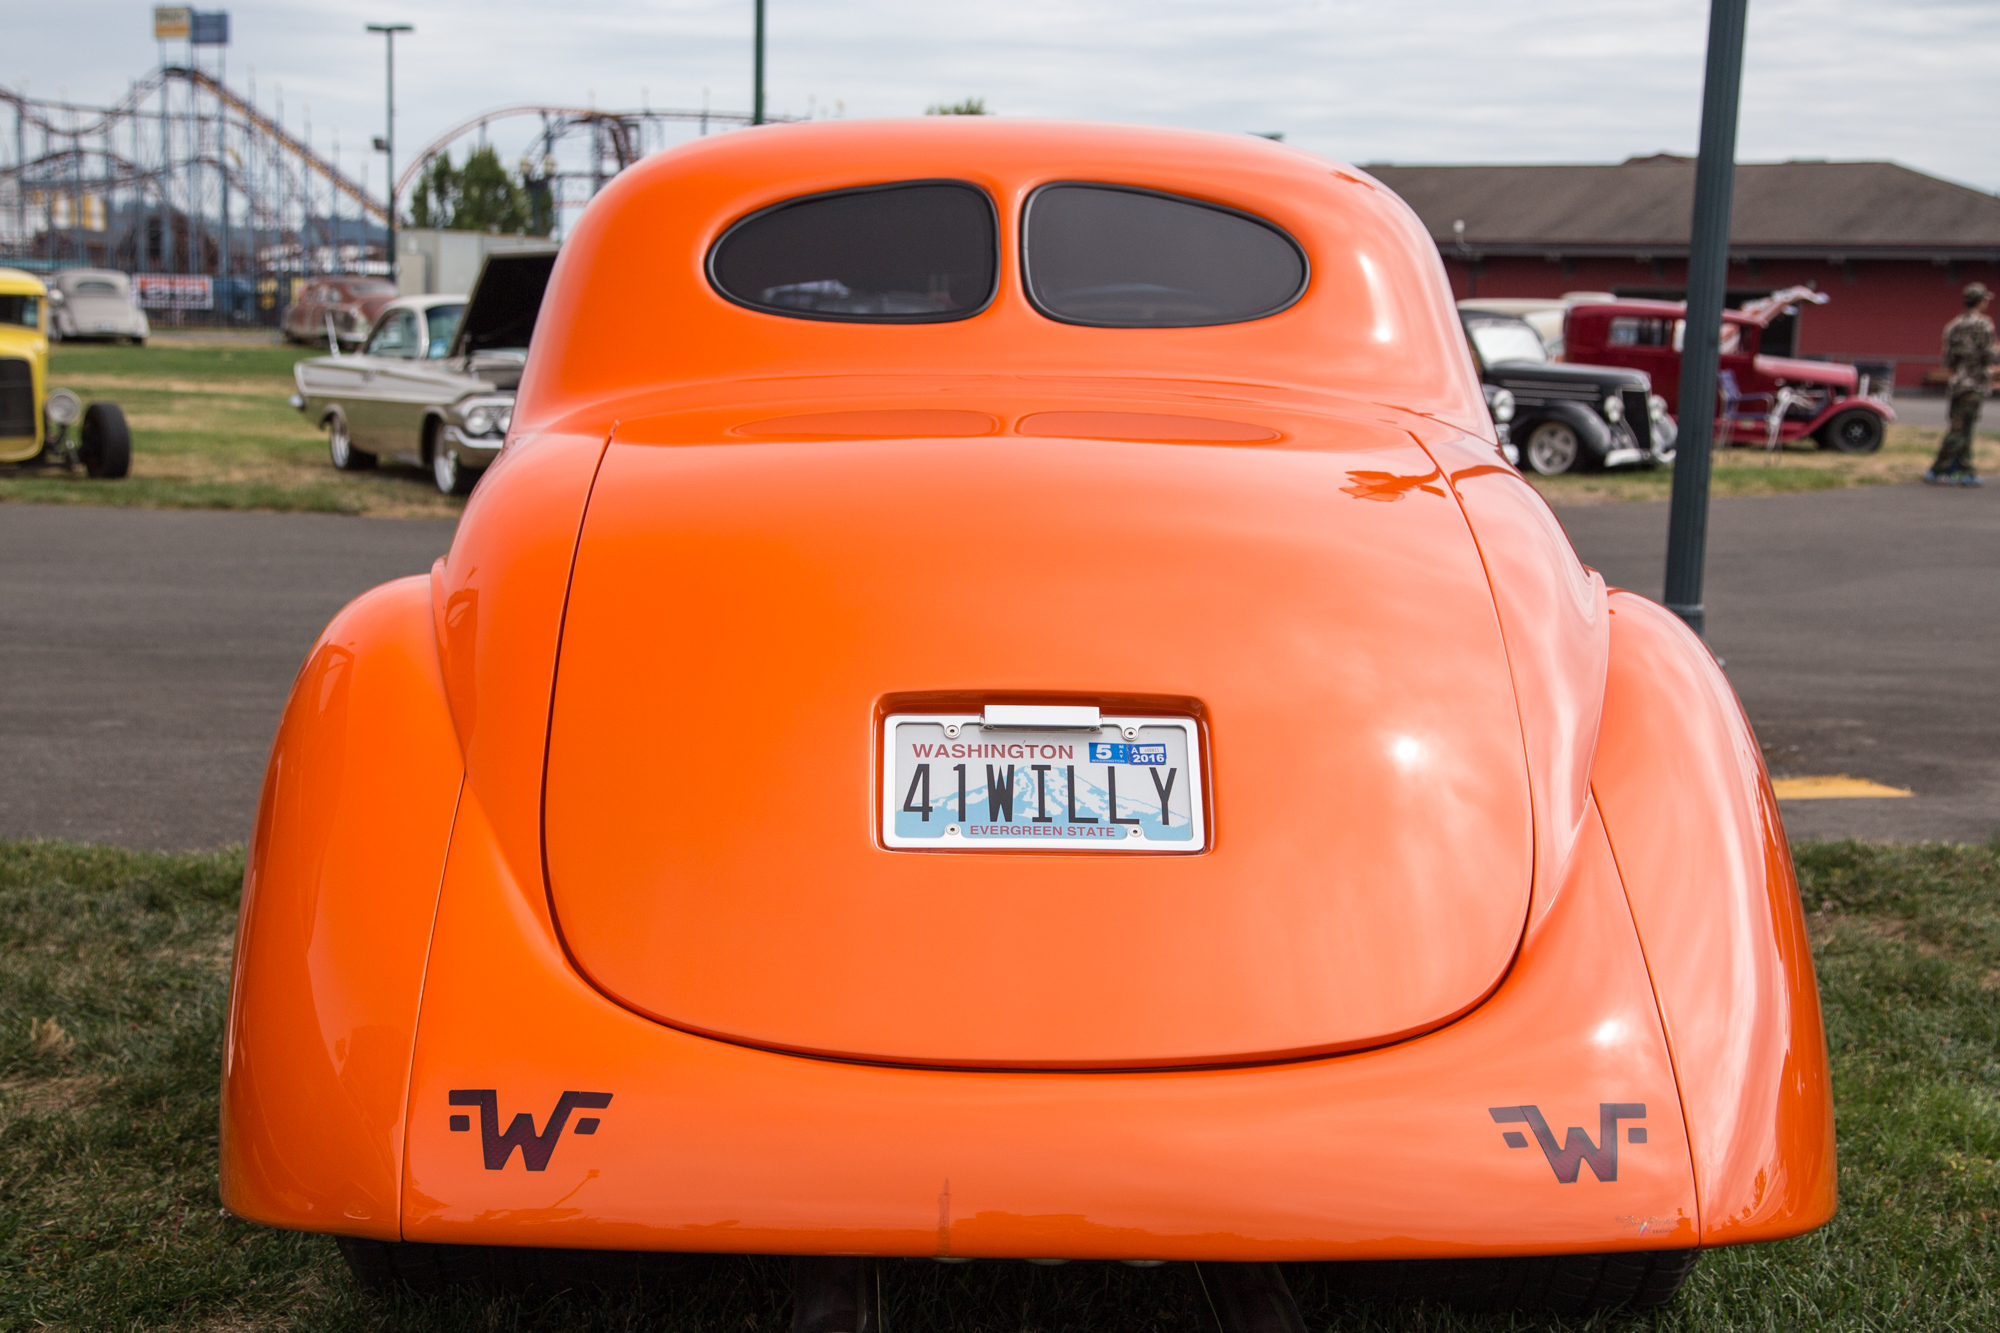 41Willys